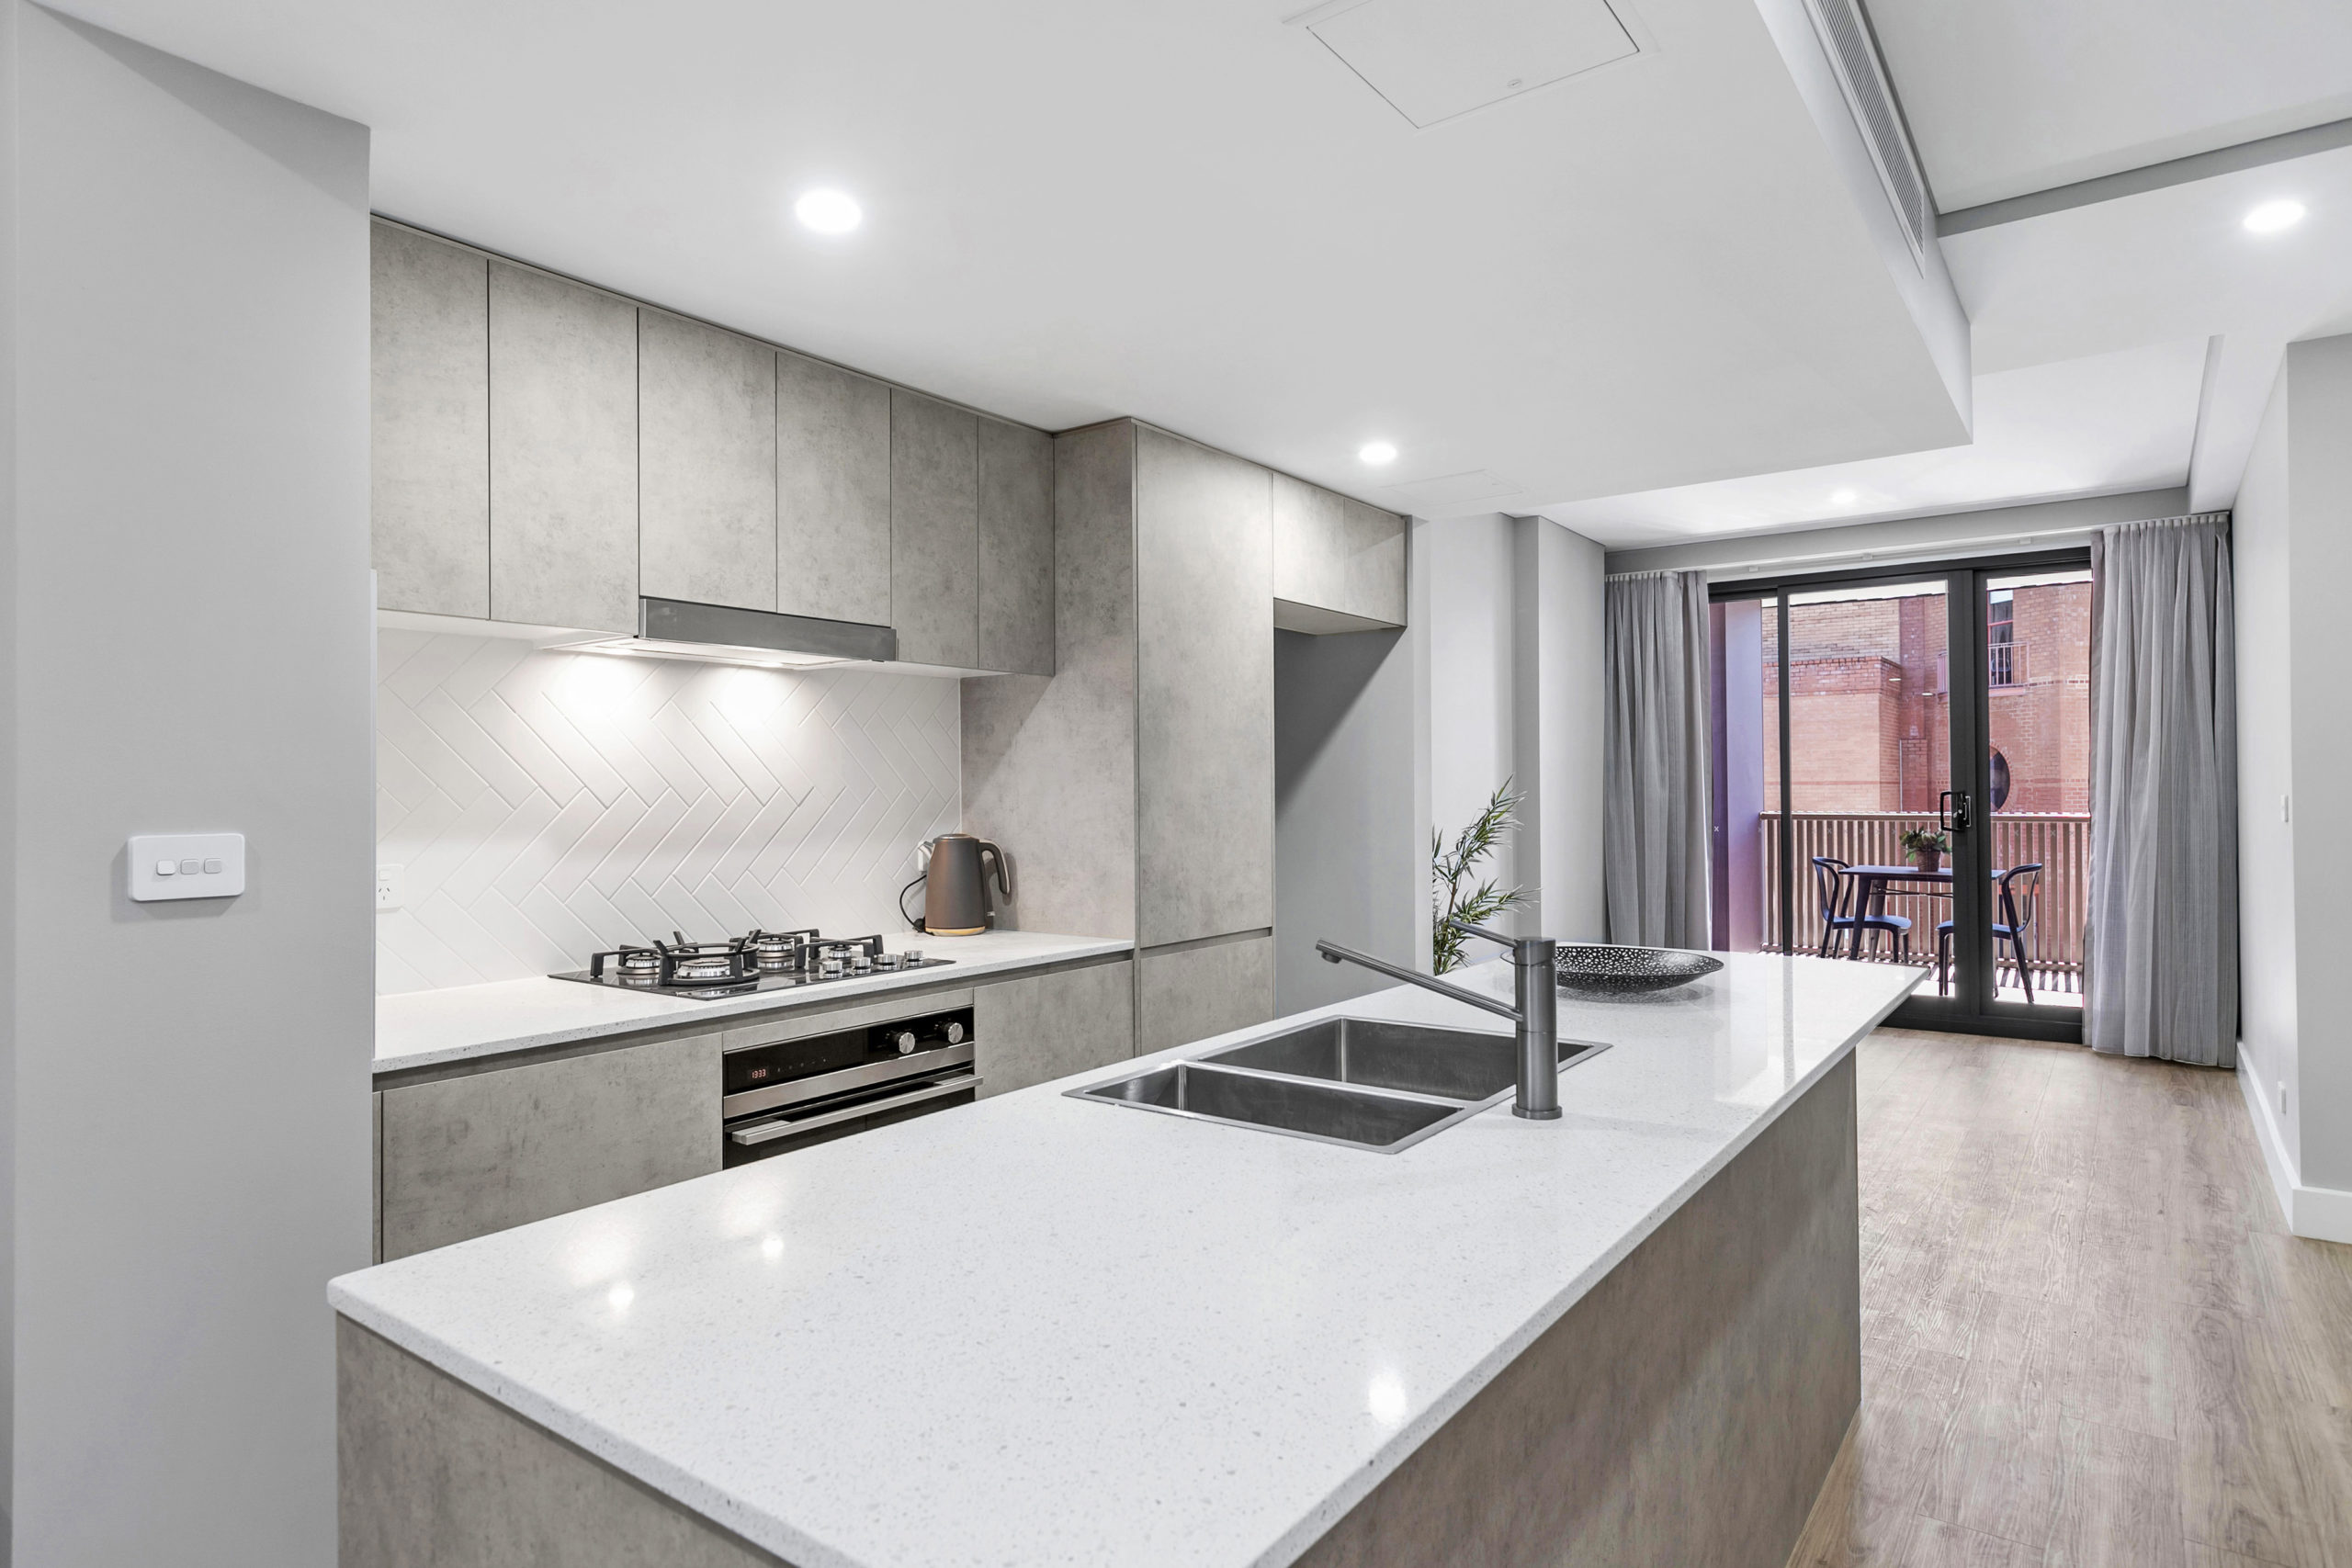 Civic Park Multi Residential Apartments Kitchen